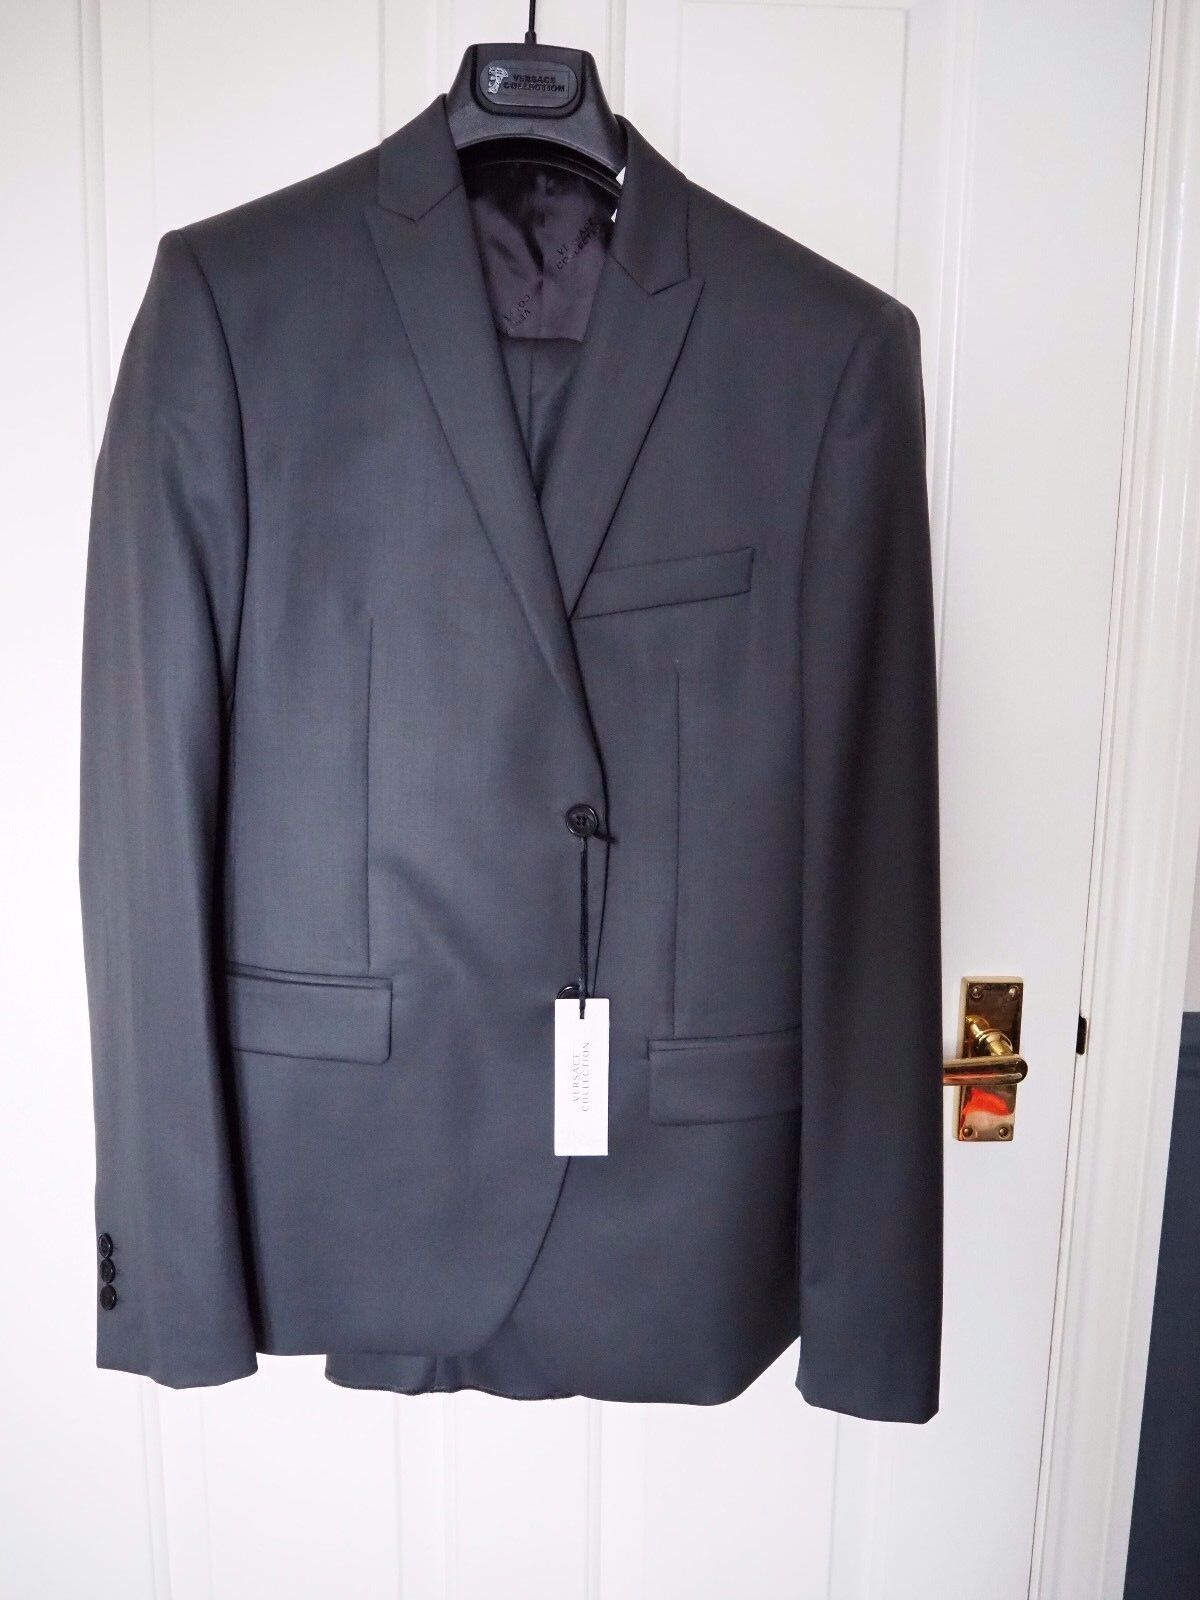 Versace Collection Grau wool suit Größe 38 (EU48) BNWT